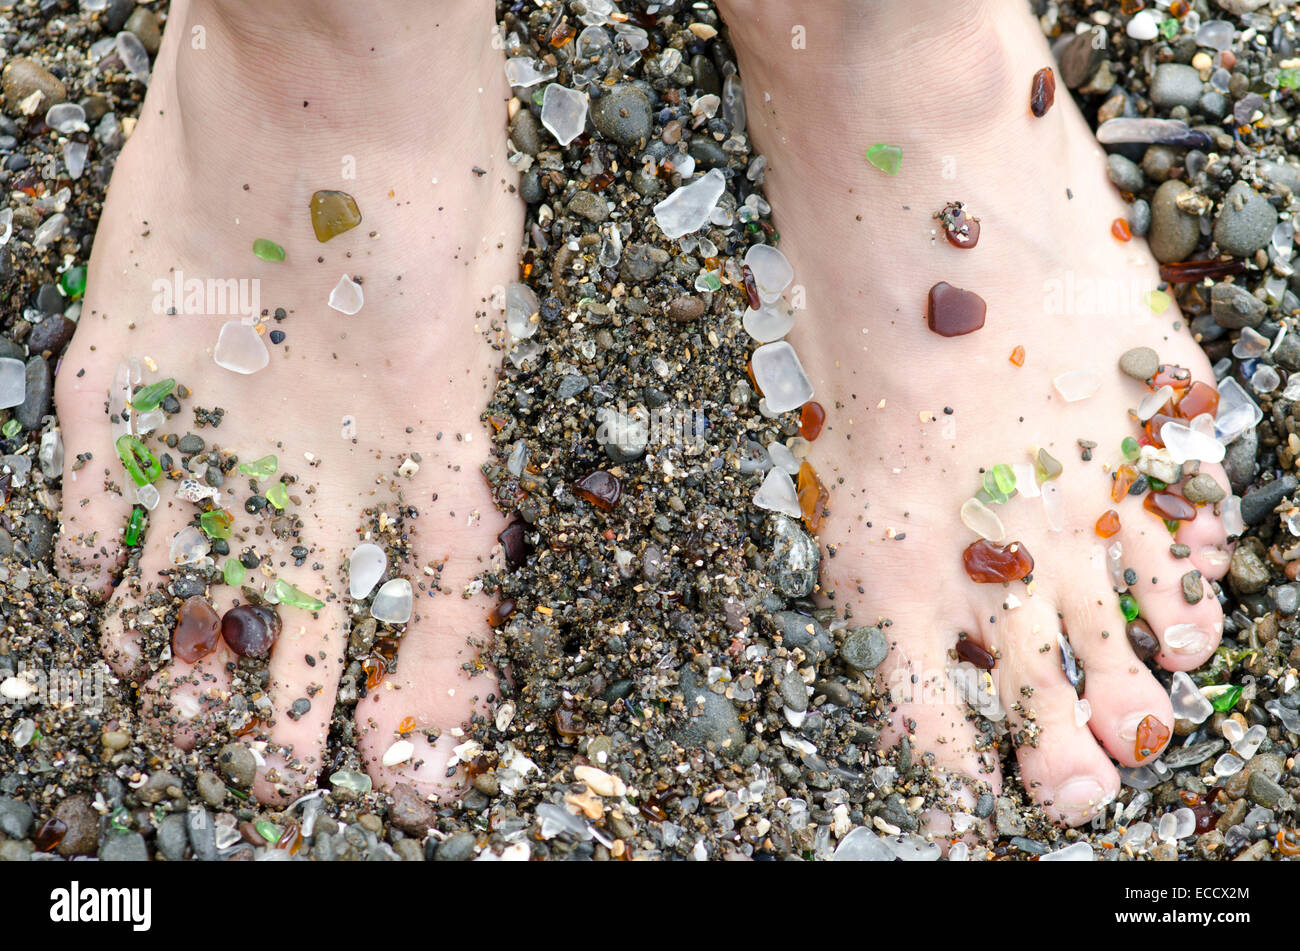 A mans feet are covered in glass from the handfuls of beach glass that wash ashore at Glass Beach in Fort Bragg, - Stock Image